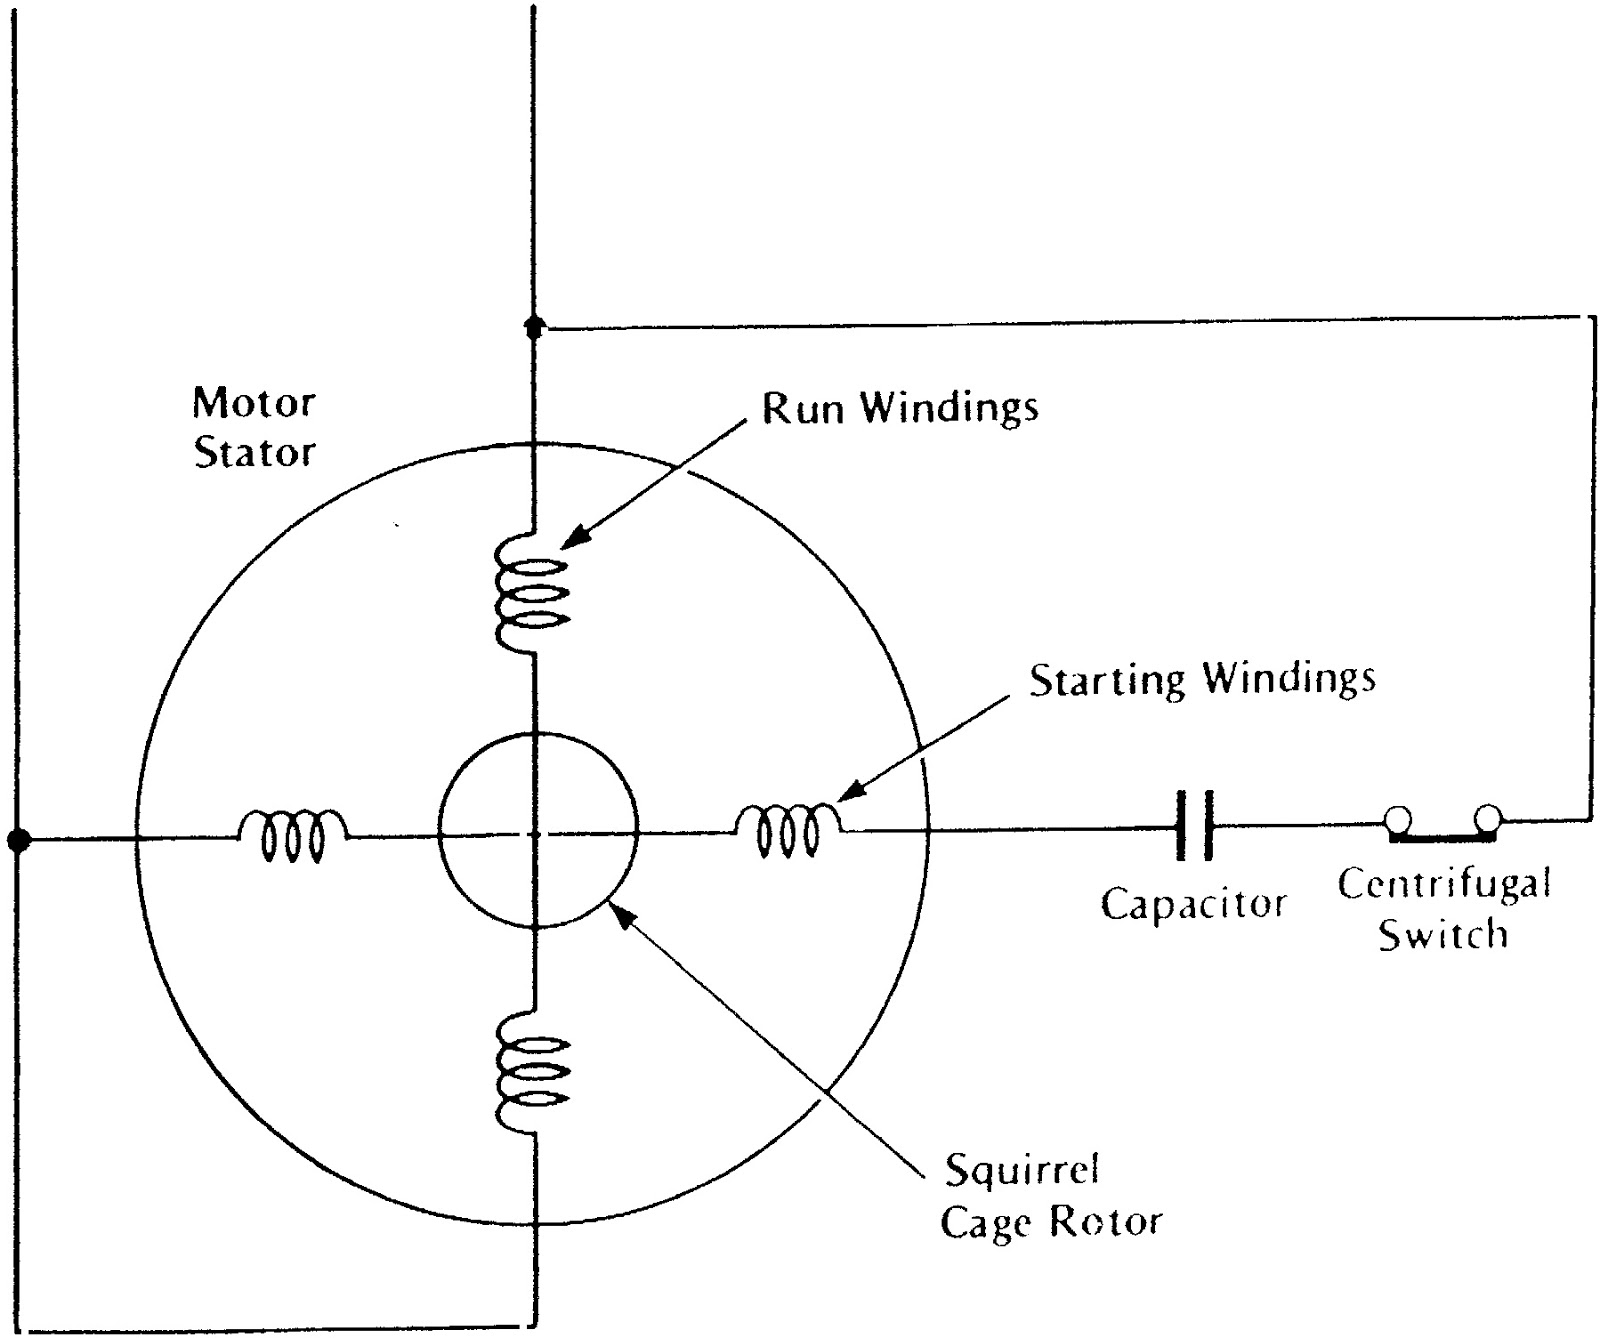 split phase induction motor wiring diagram 1998 vw golf stereo engineering photos videos and articels search